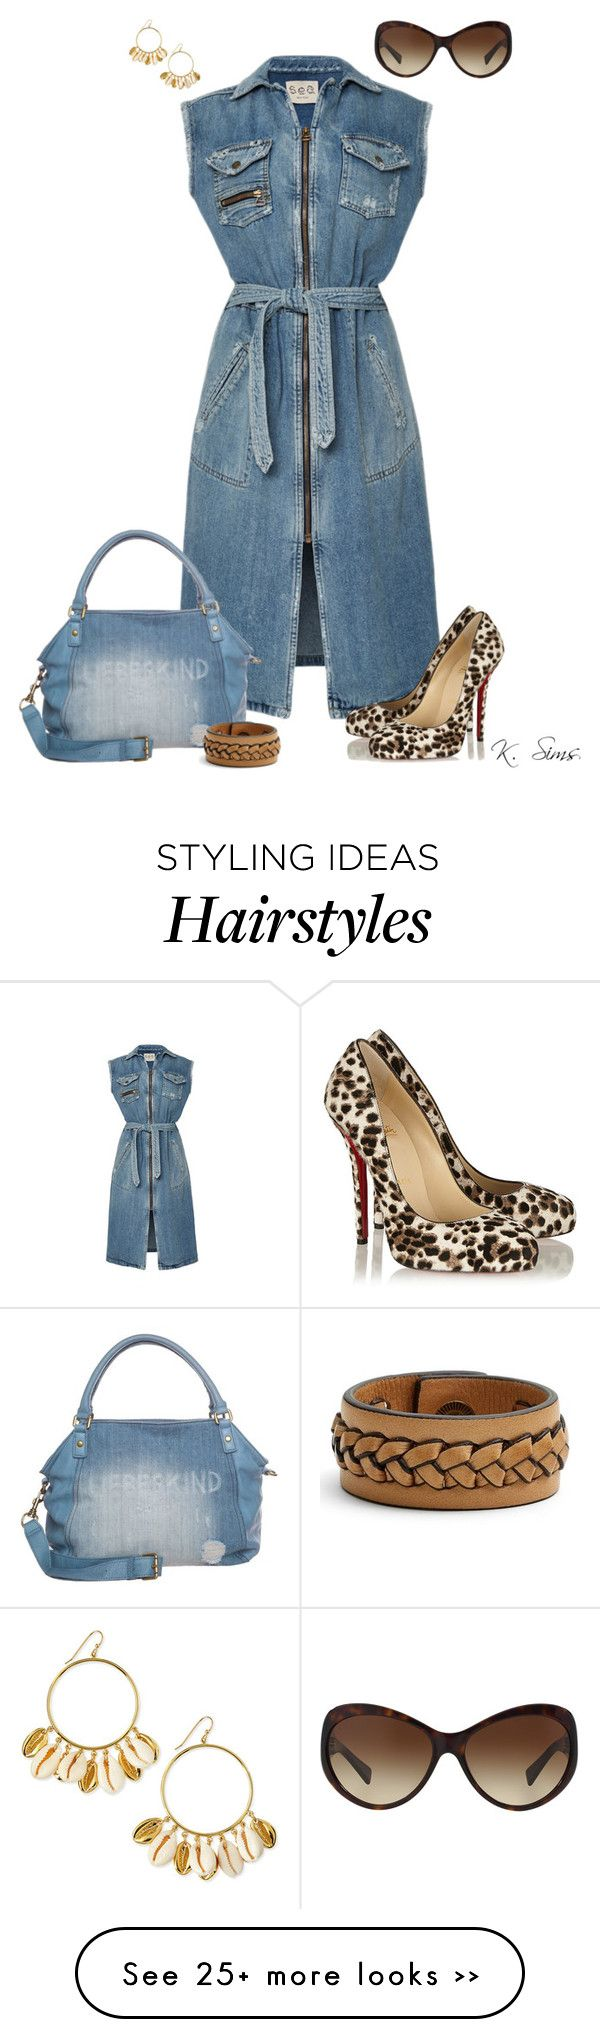 """""""Double Denim"""" by ksims-1 on Polyvore"""